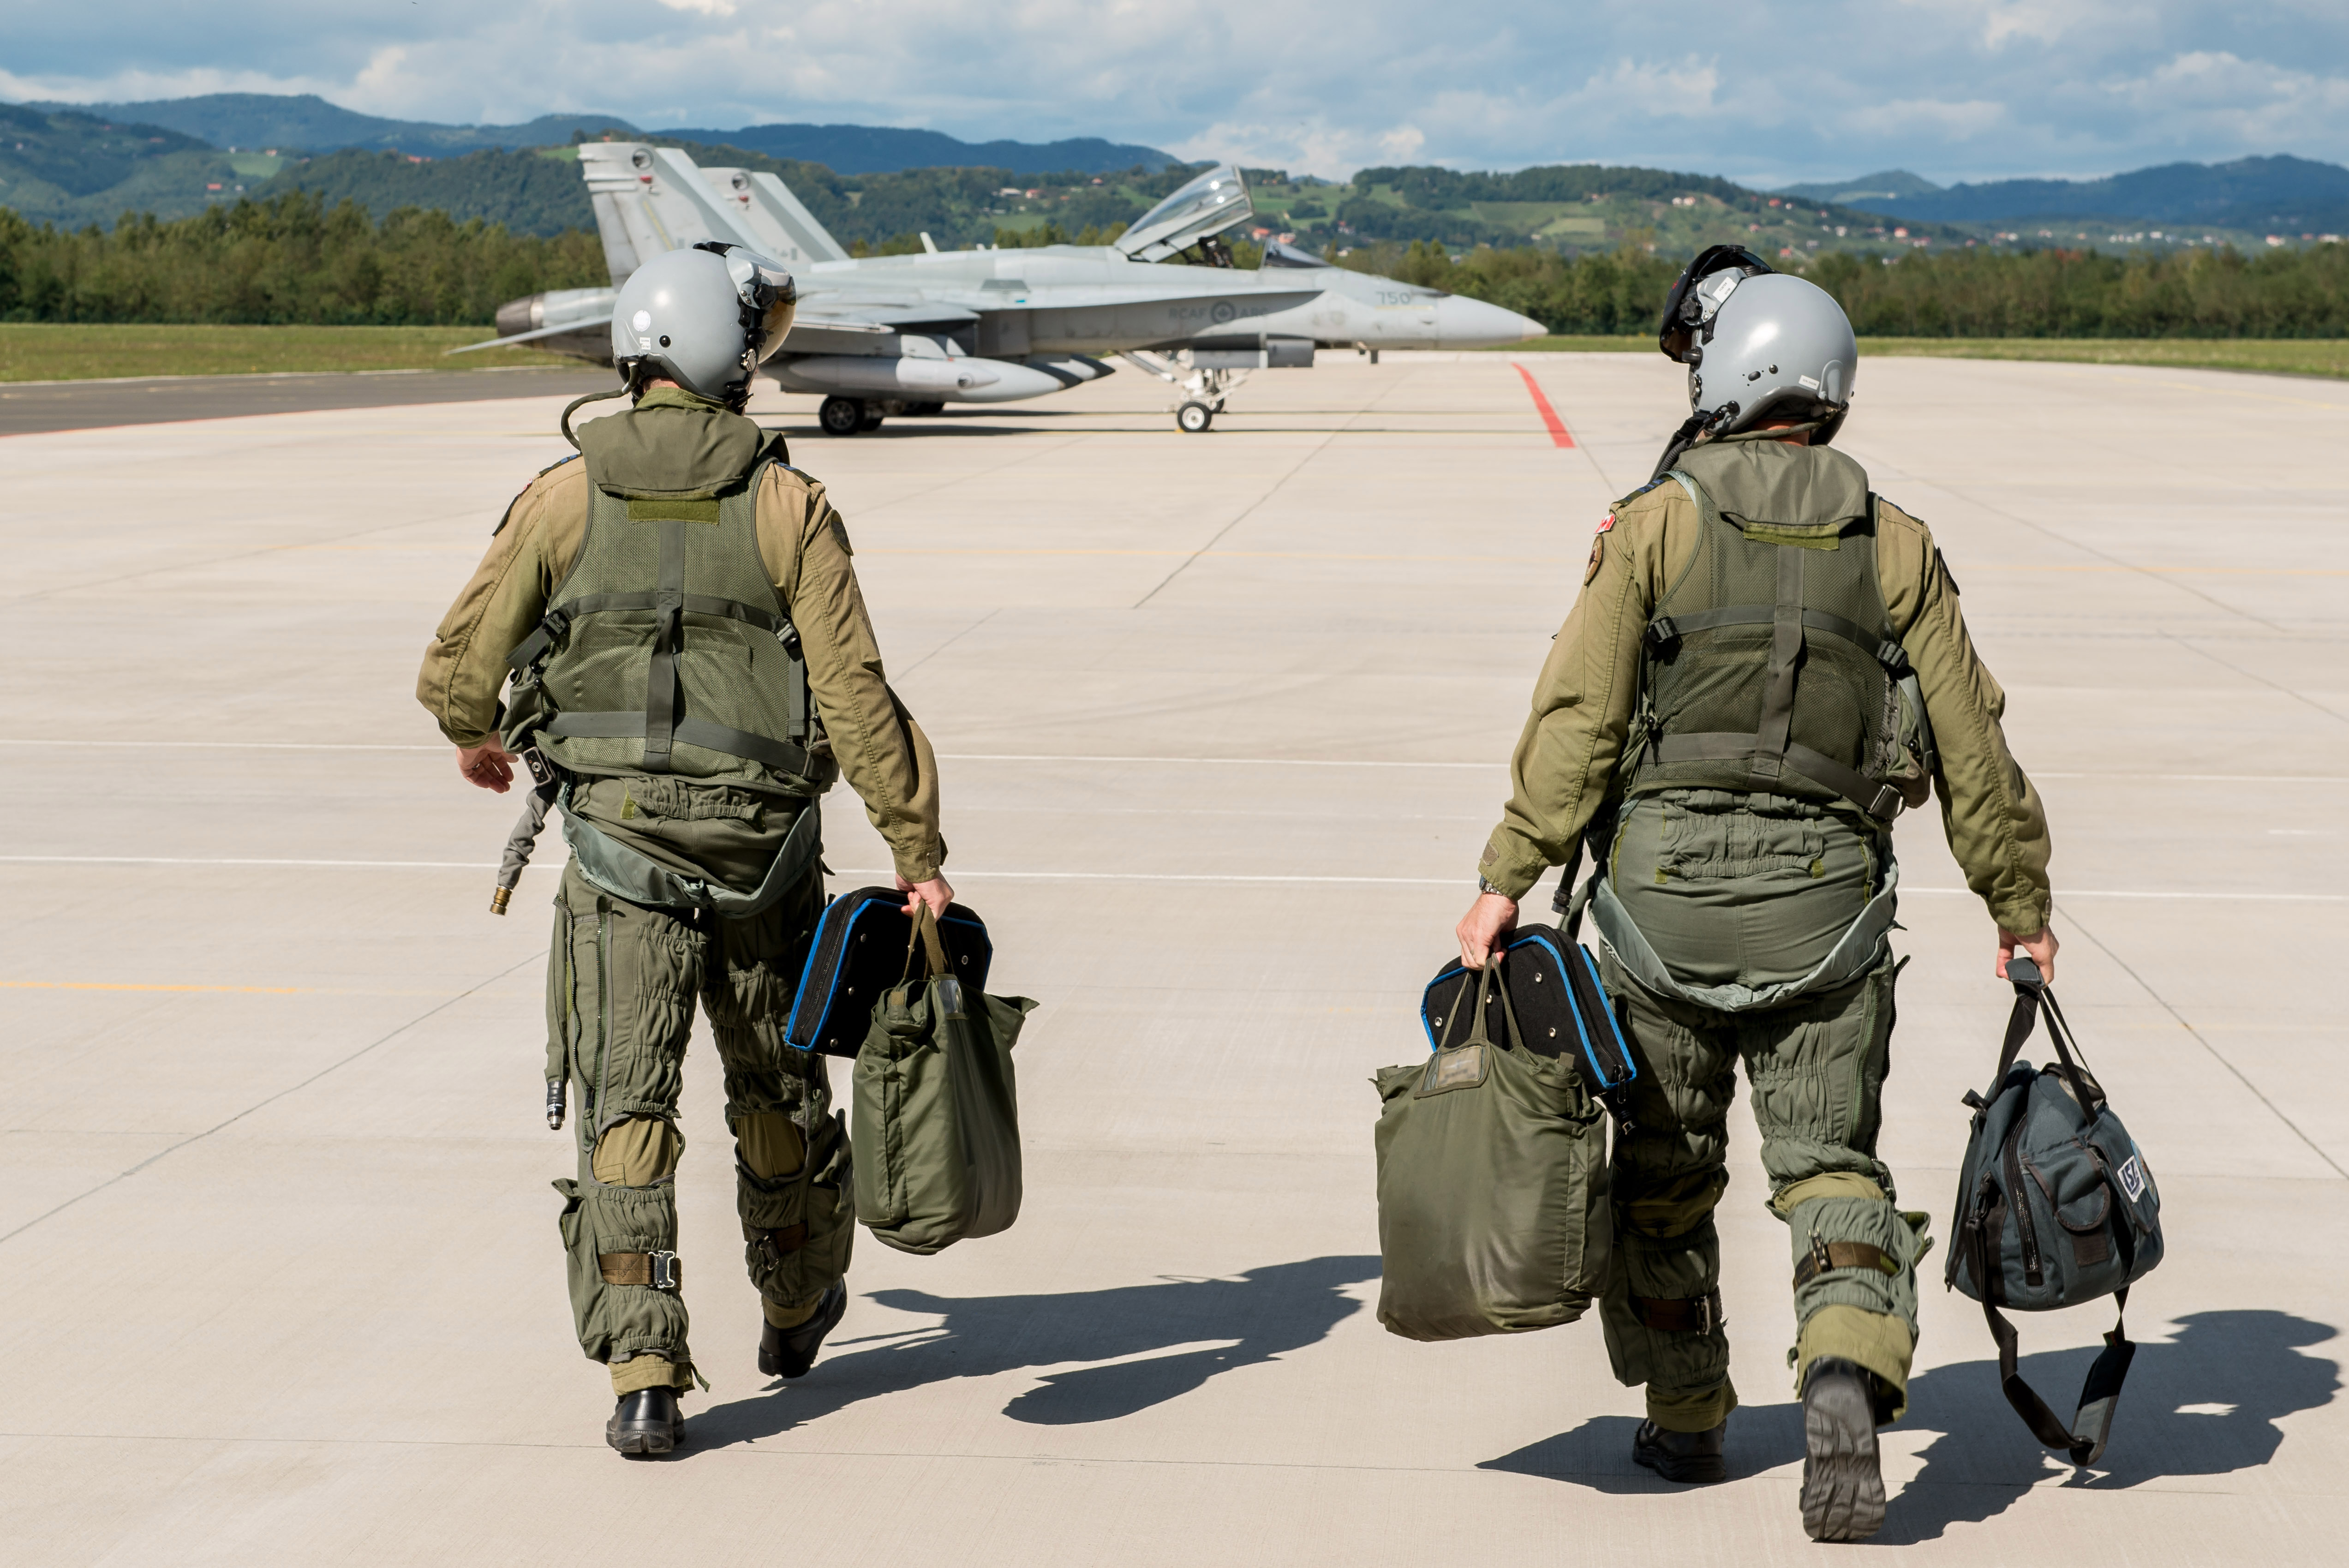 Canadian Armed Forces pilots walk towards the CF-188 Hornet aircraft on the tarmac at Cerklje Air Force Base, Slovenia on 21 September 2017 during a bilateral defence visit as part of an outreach activity for Operation REASSURANCE. Image by: Sergeant Daren Kraus